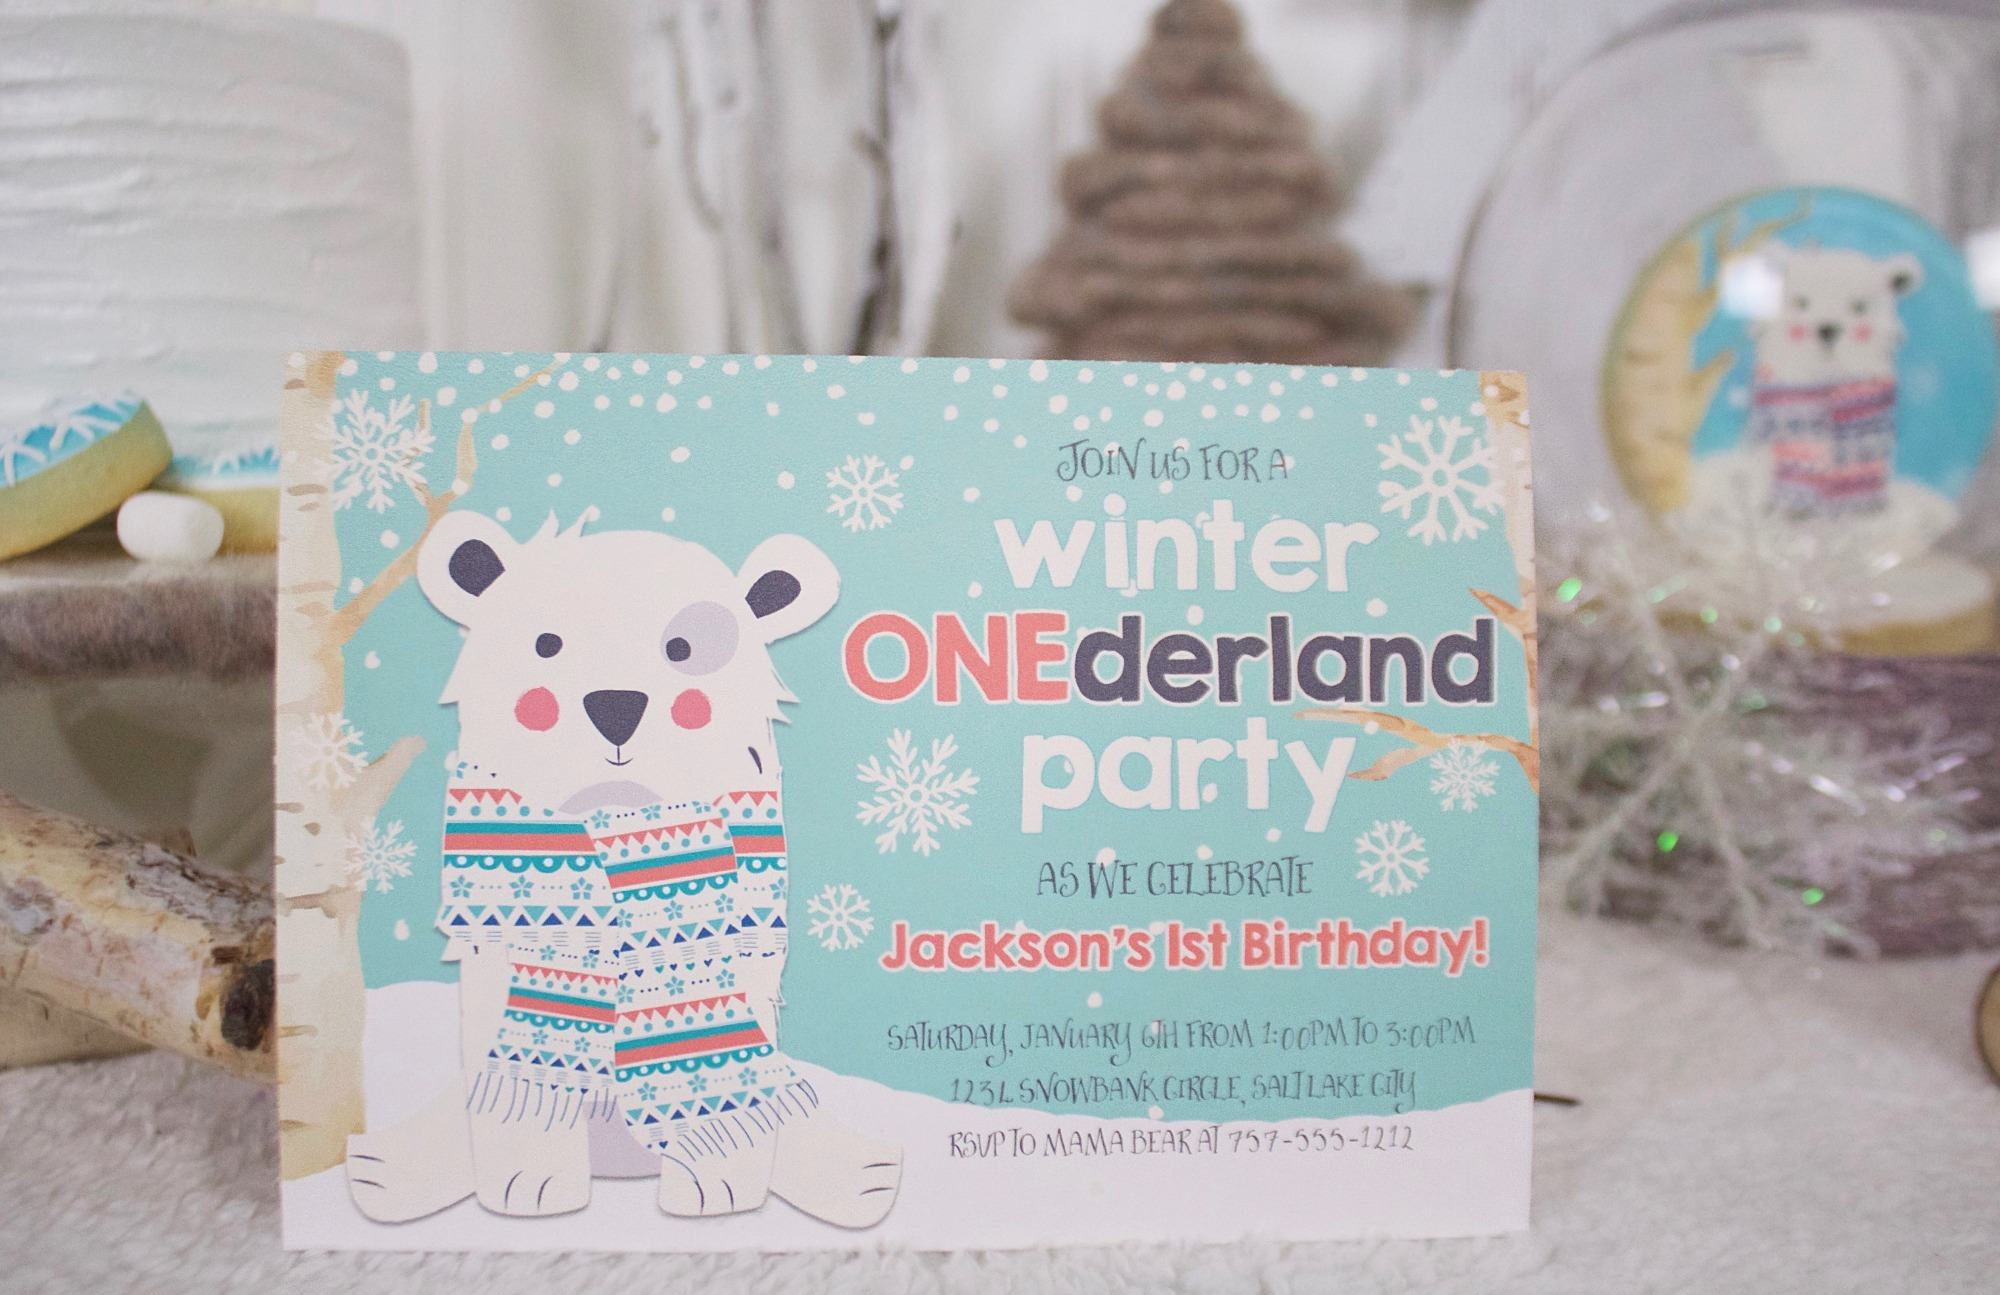 Invitation from Winter ONEderland Birthday Party by Jen T by Design | Black Twine